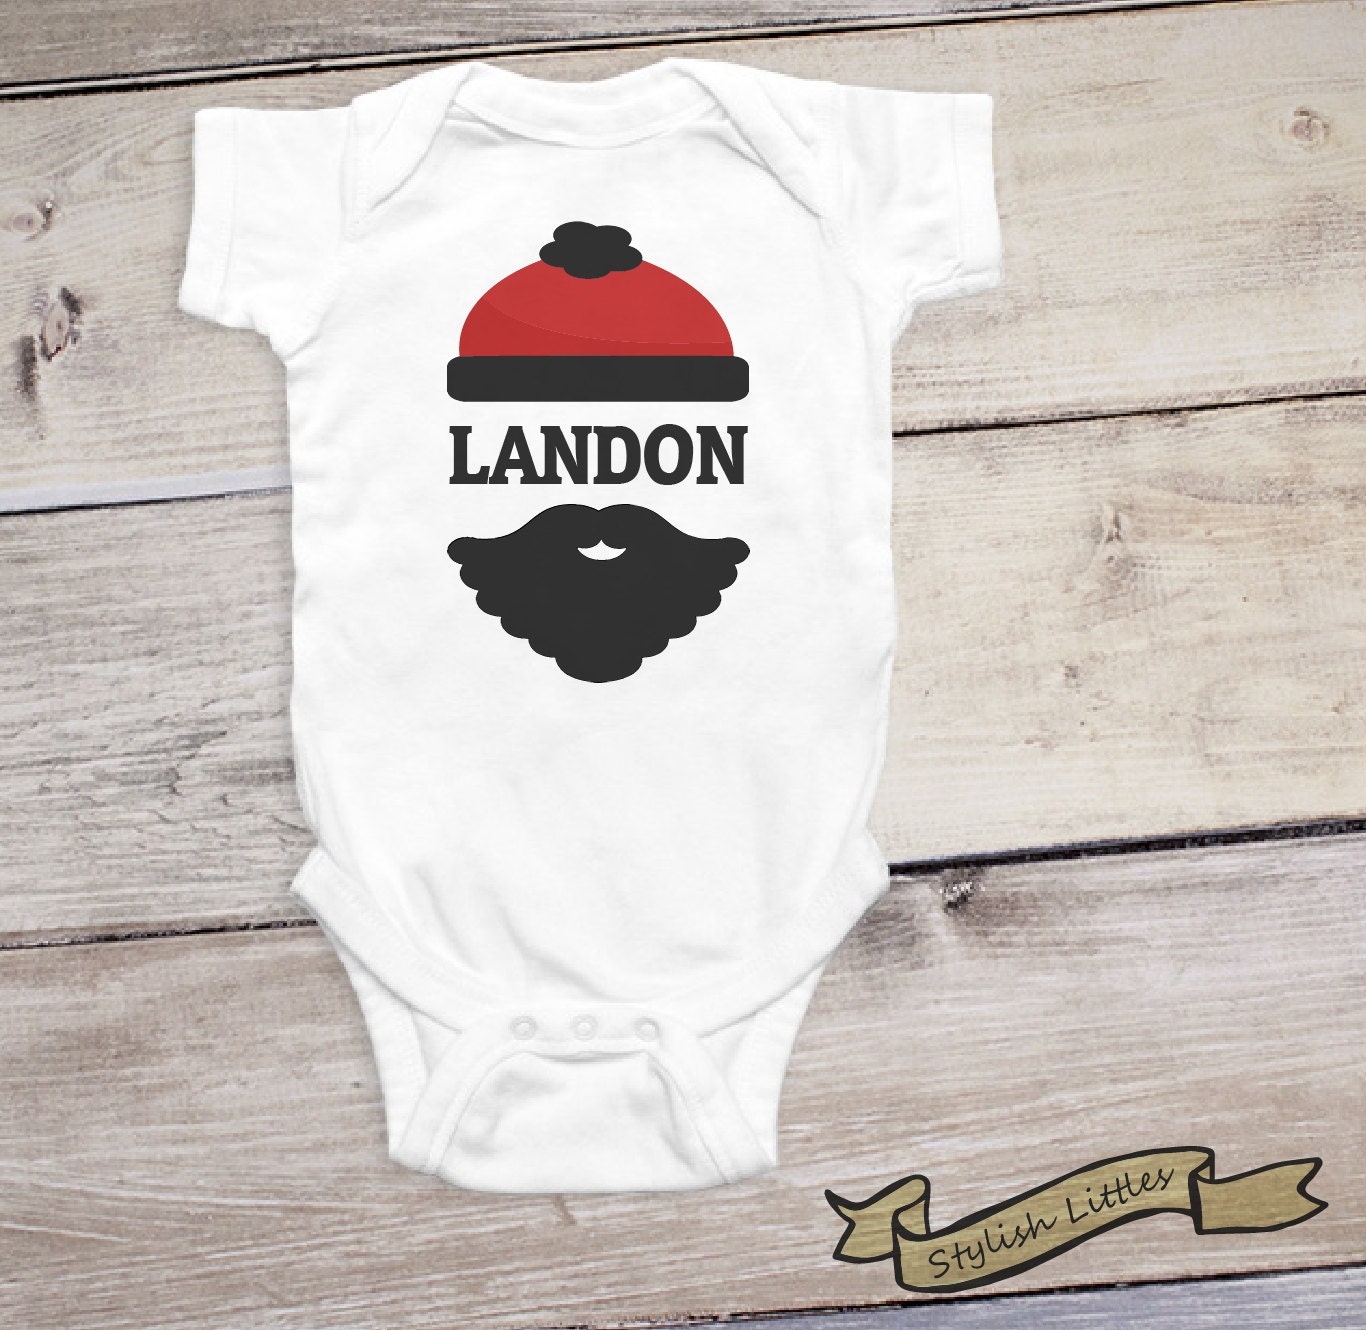 Personalized baby gifts for boy onesie lumberjack baby outfit personalized baby gifts for boy onesie lumberjack baby outfit custom name shirt personalized onesie boy negle Gallery